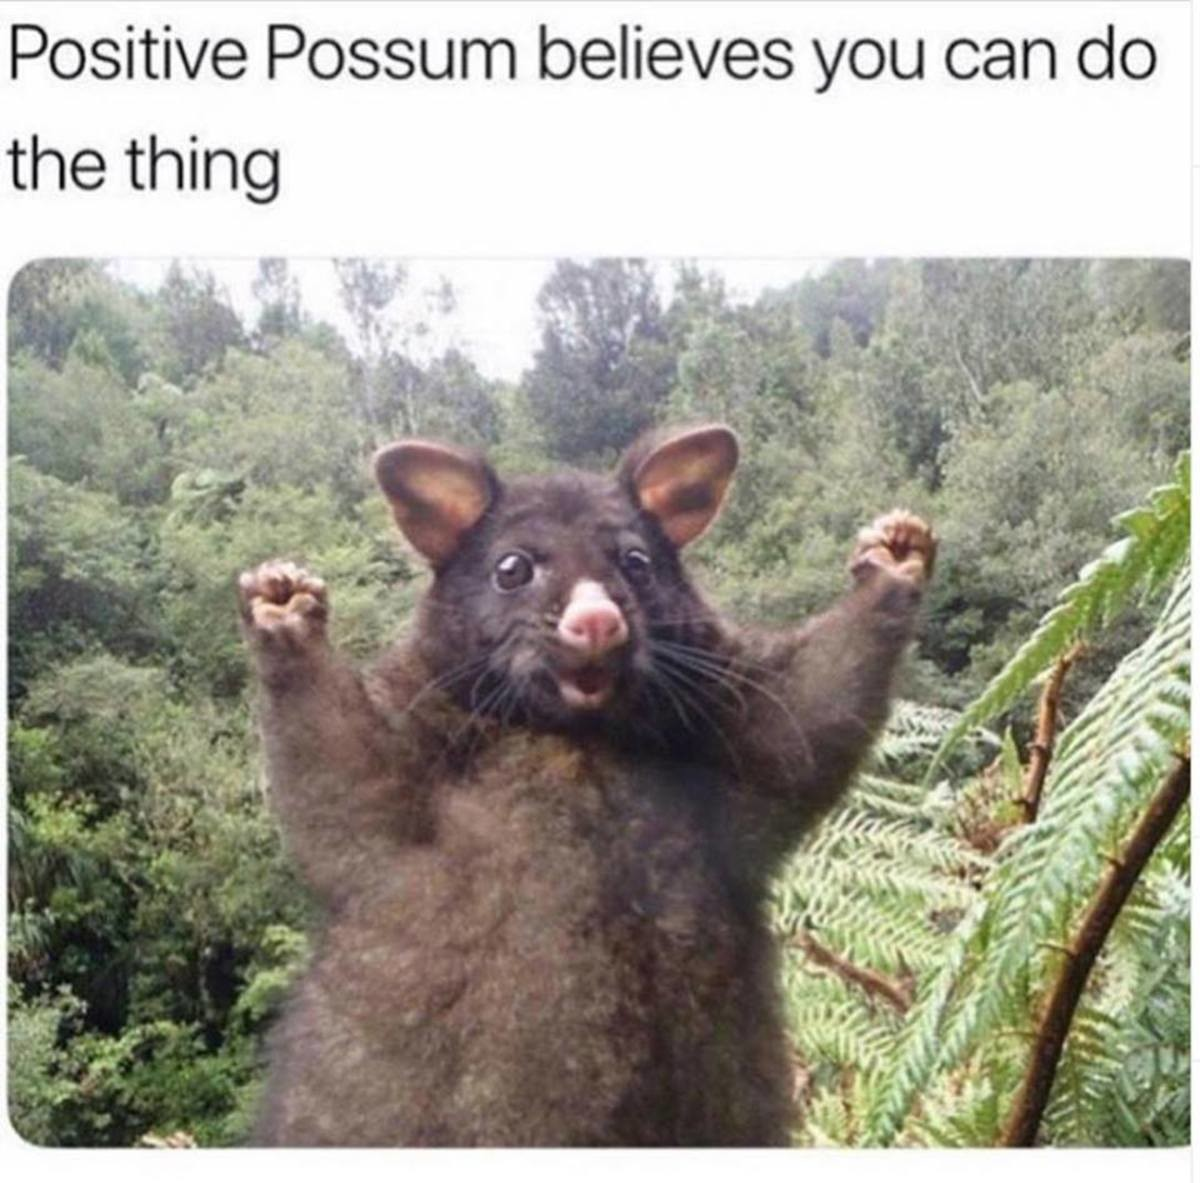 Positive Possum believes you can do the thing